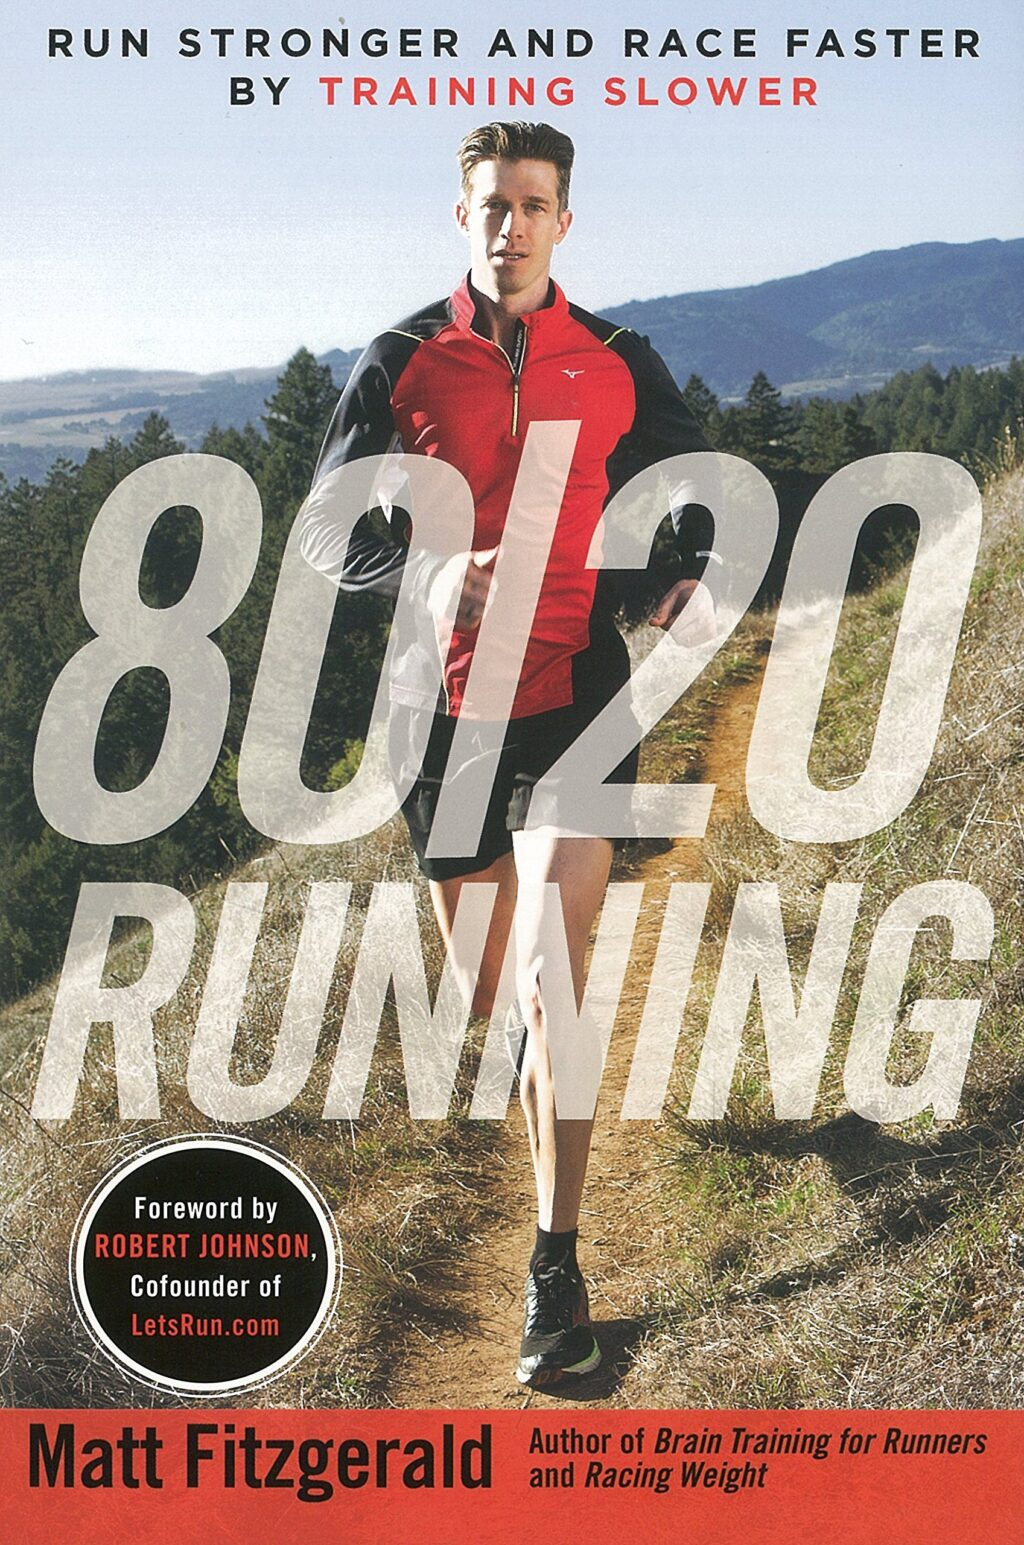 80-20-running-run-stronger-and-race-faster-by-training-slower